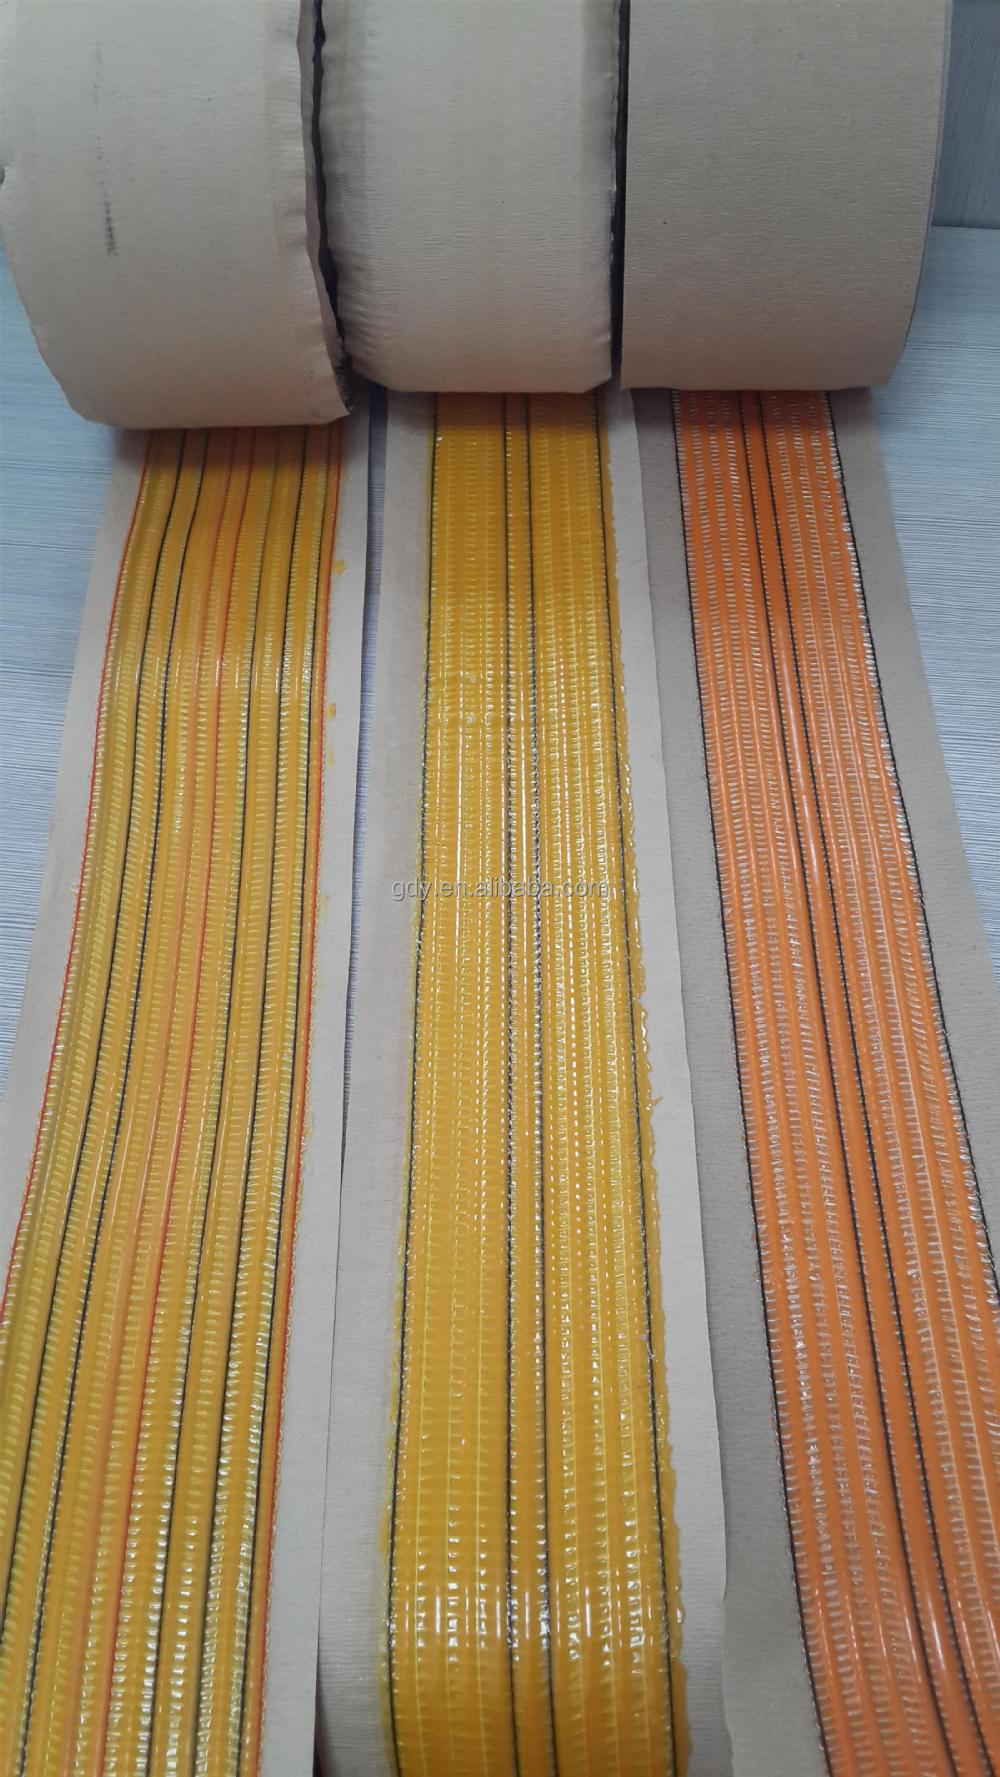 carpet edging tape. edging strip 3m hot melt adhesive carpet edge binding tape made in china 2